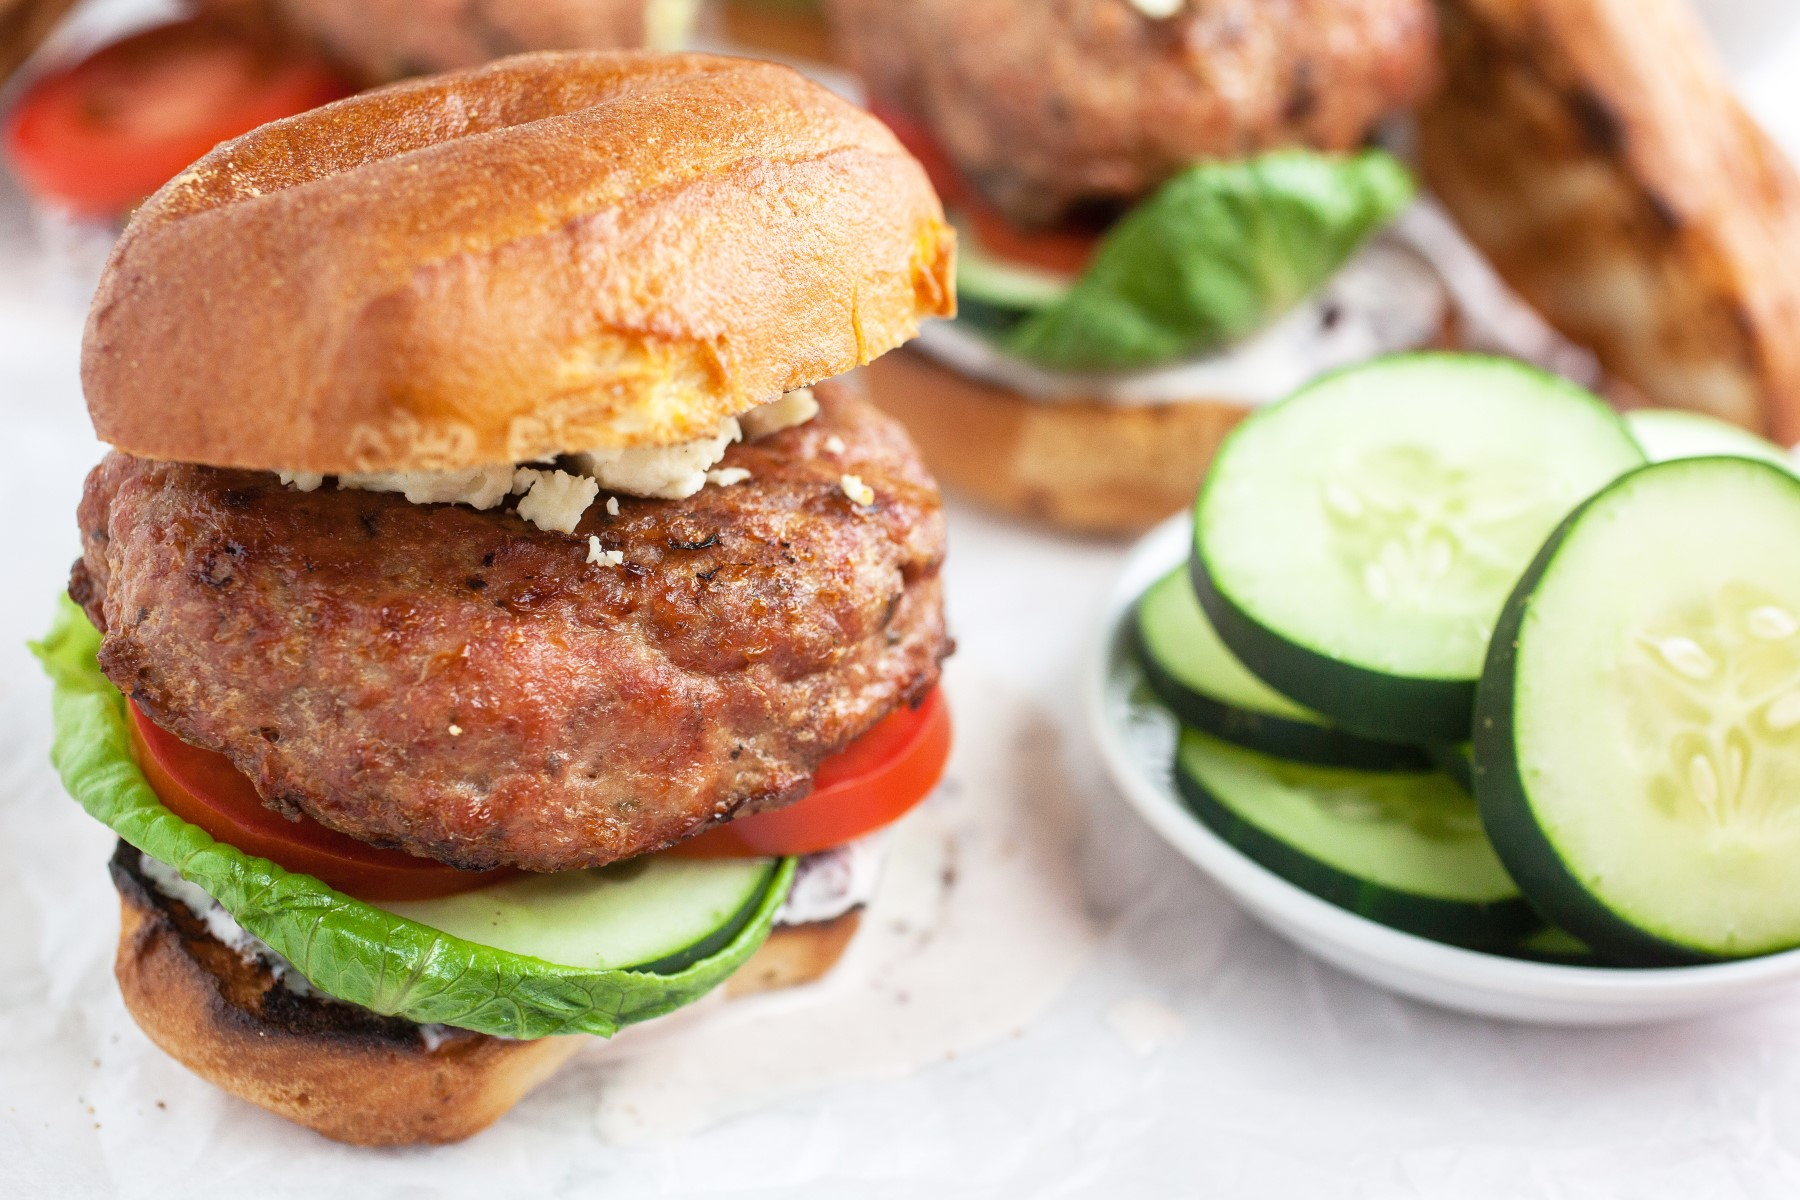 Greek turkey burger with feta, cucumber and tomato slices and lettuce sitting on a white counter.